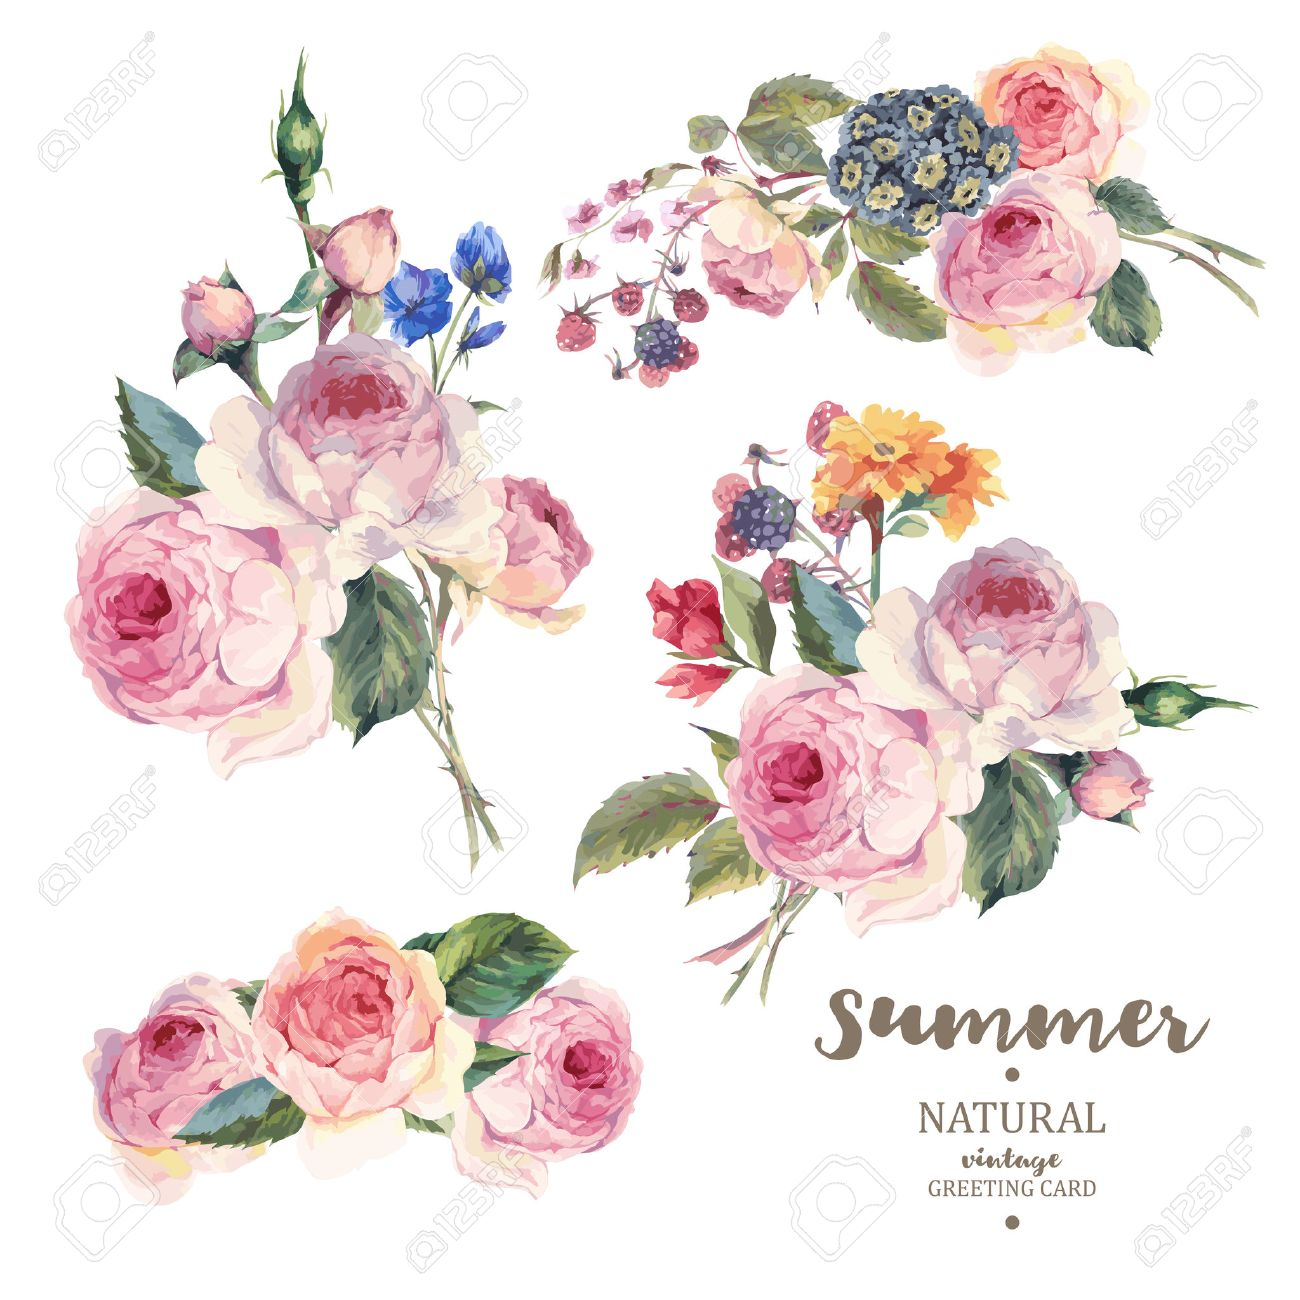 866db2ef72e70 Set of vintage floral vector bouquet of English roses and wildflowers,..